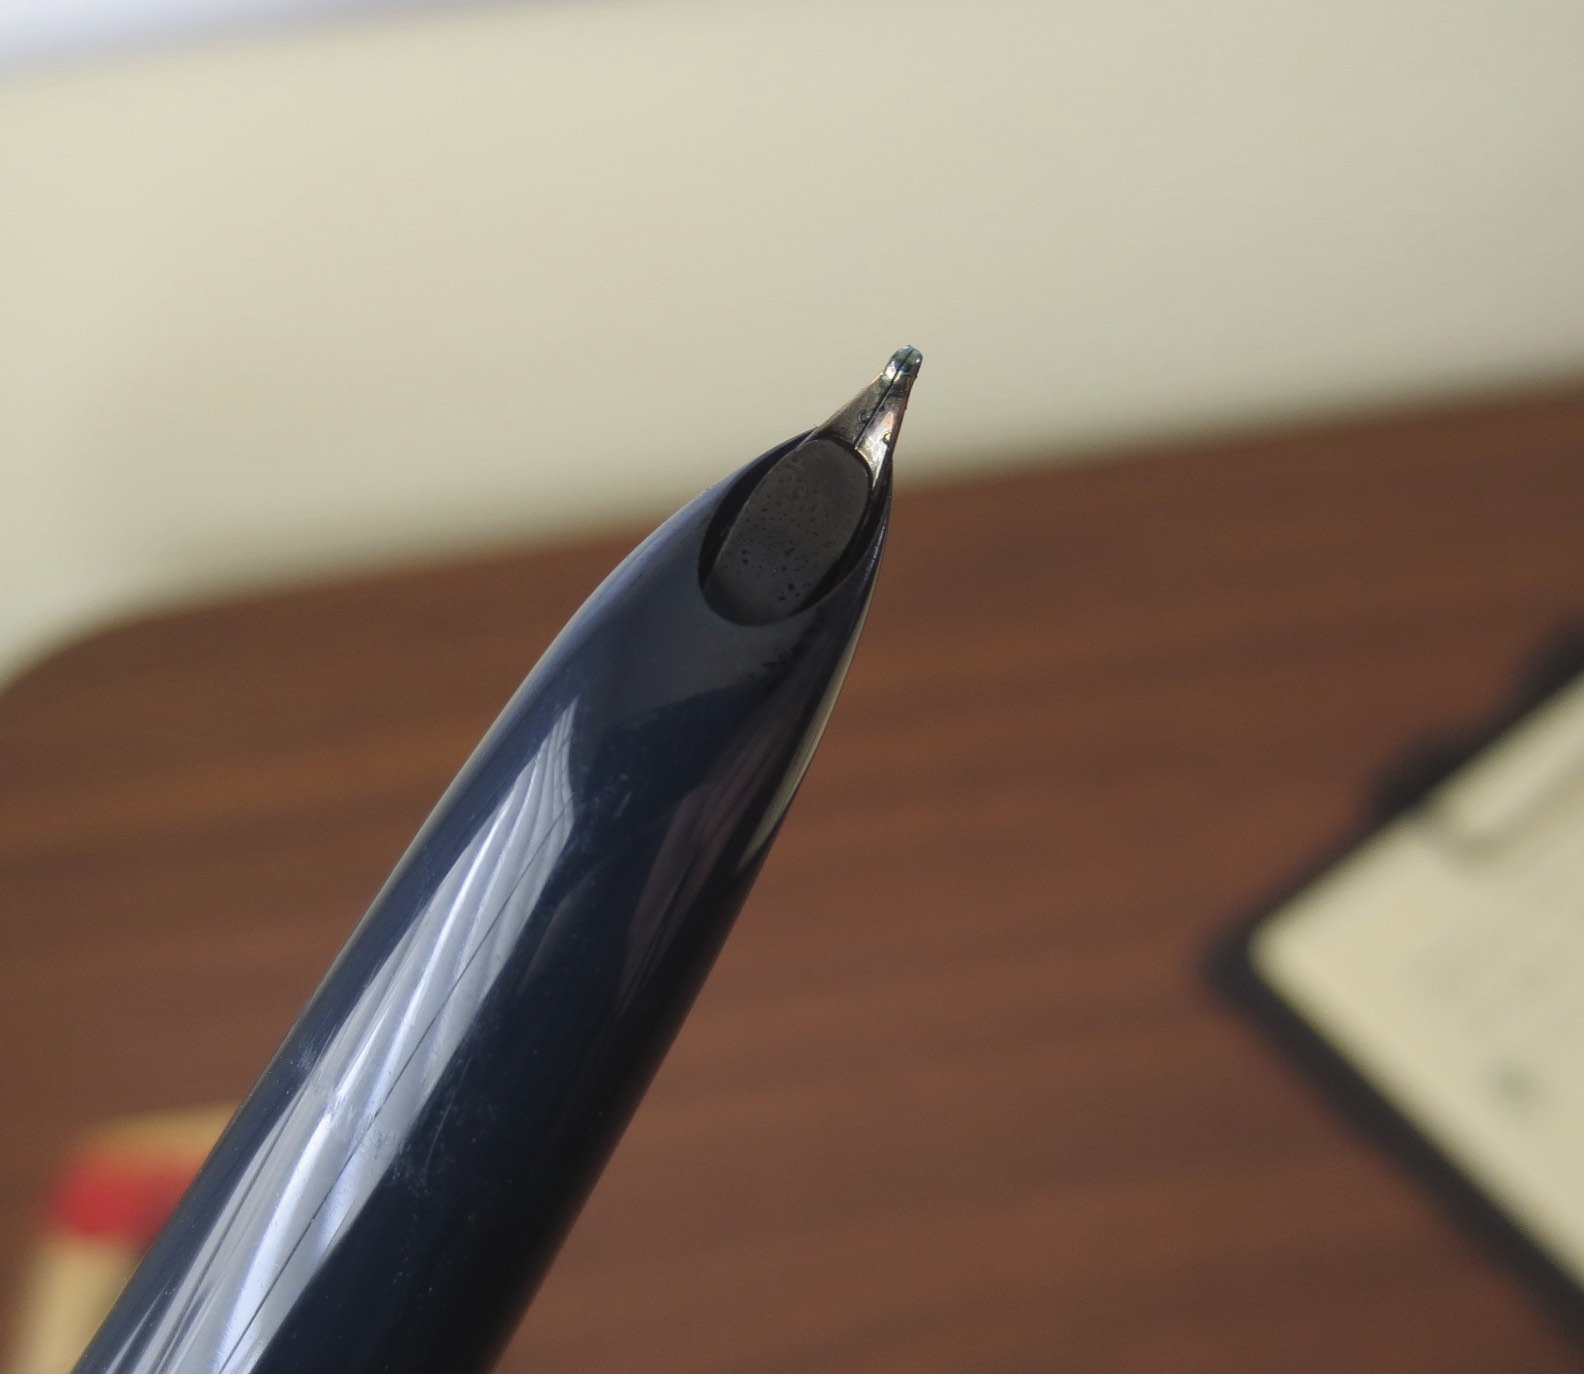 Underside of Hooded Nib